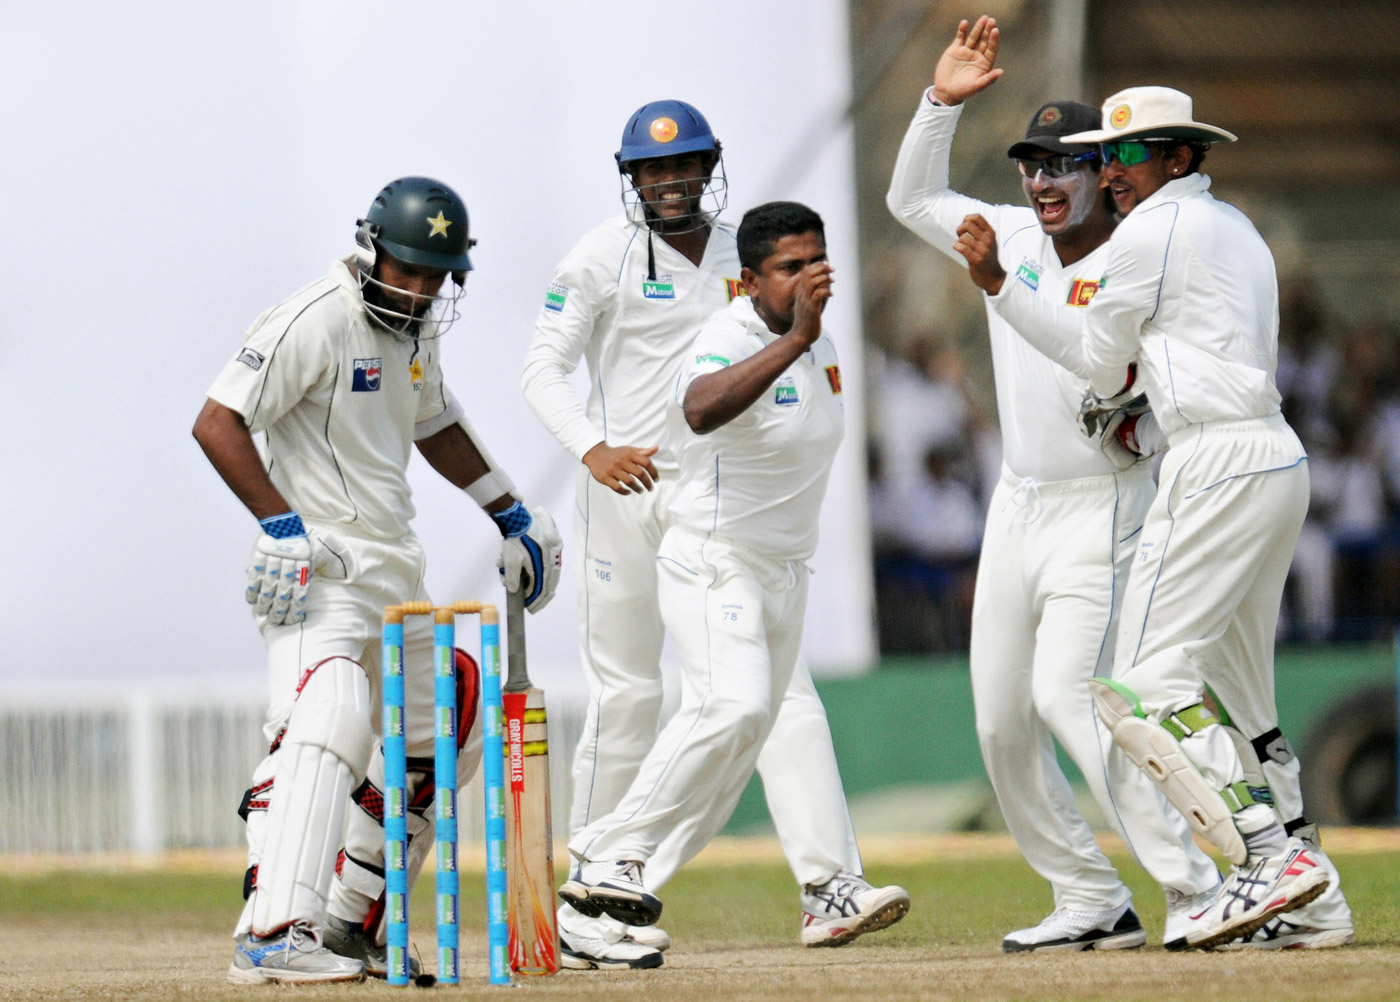 From Stoke to stoked: Herath made a successful return to Test cricket in 2009, taking 4 for 15 in 11.3 overs as Pakistan were bowled out for 117 while chasing 168 in Galle